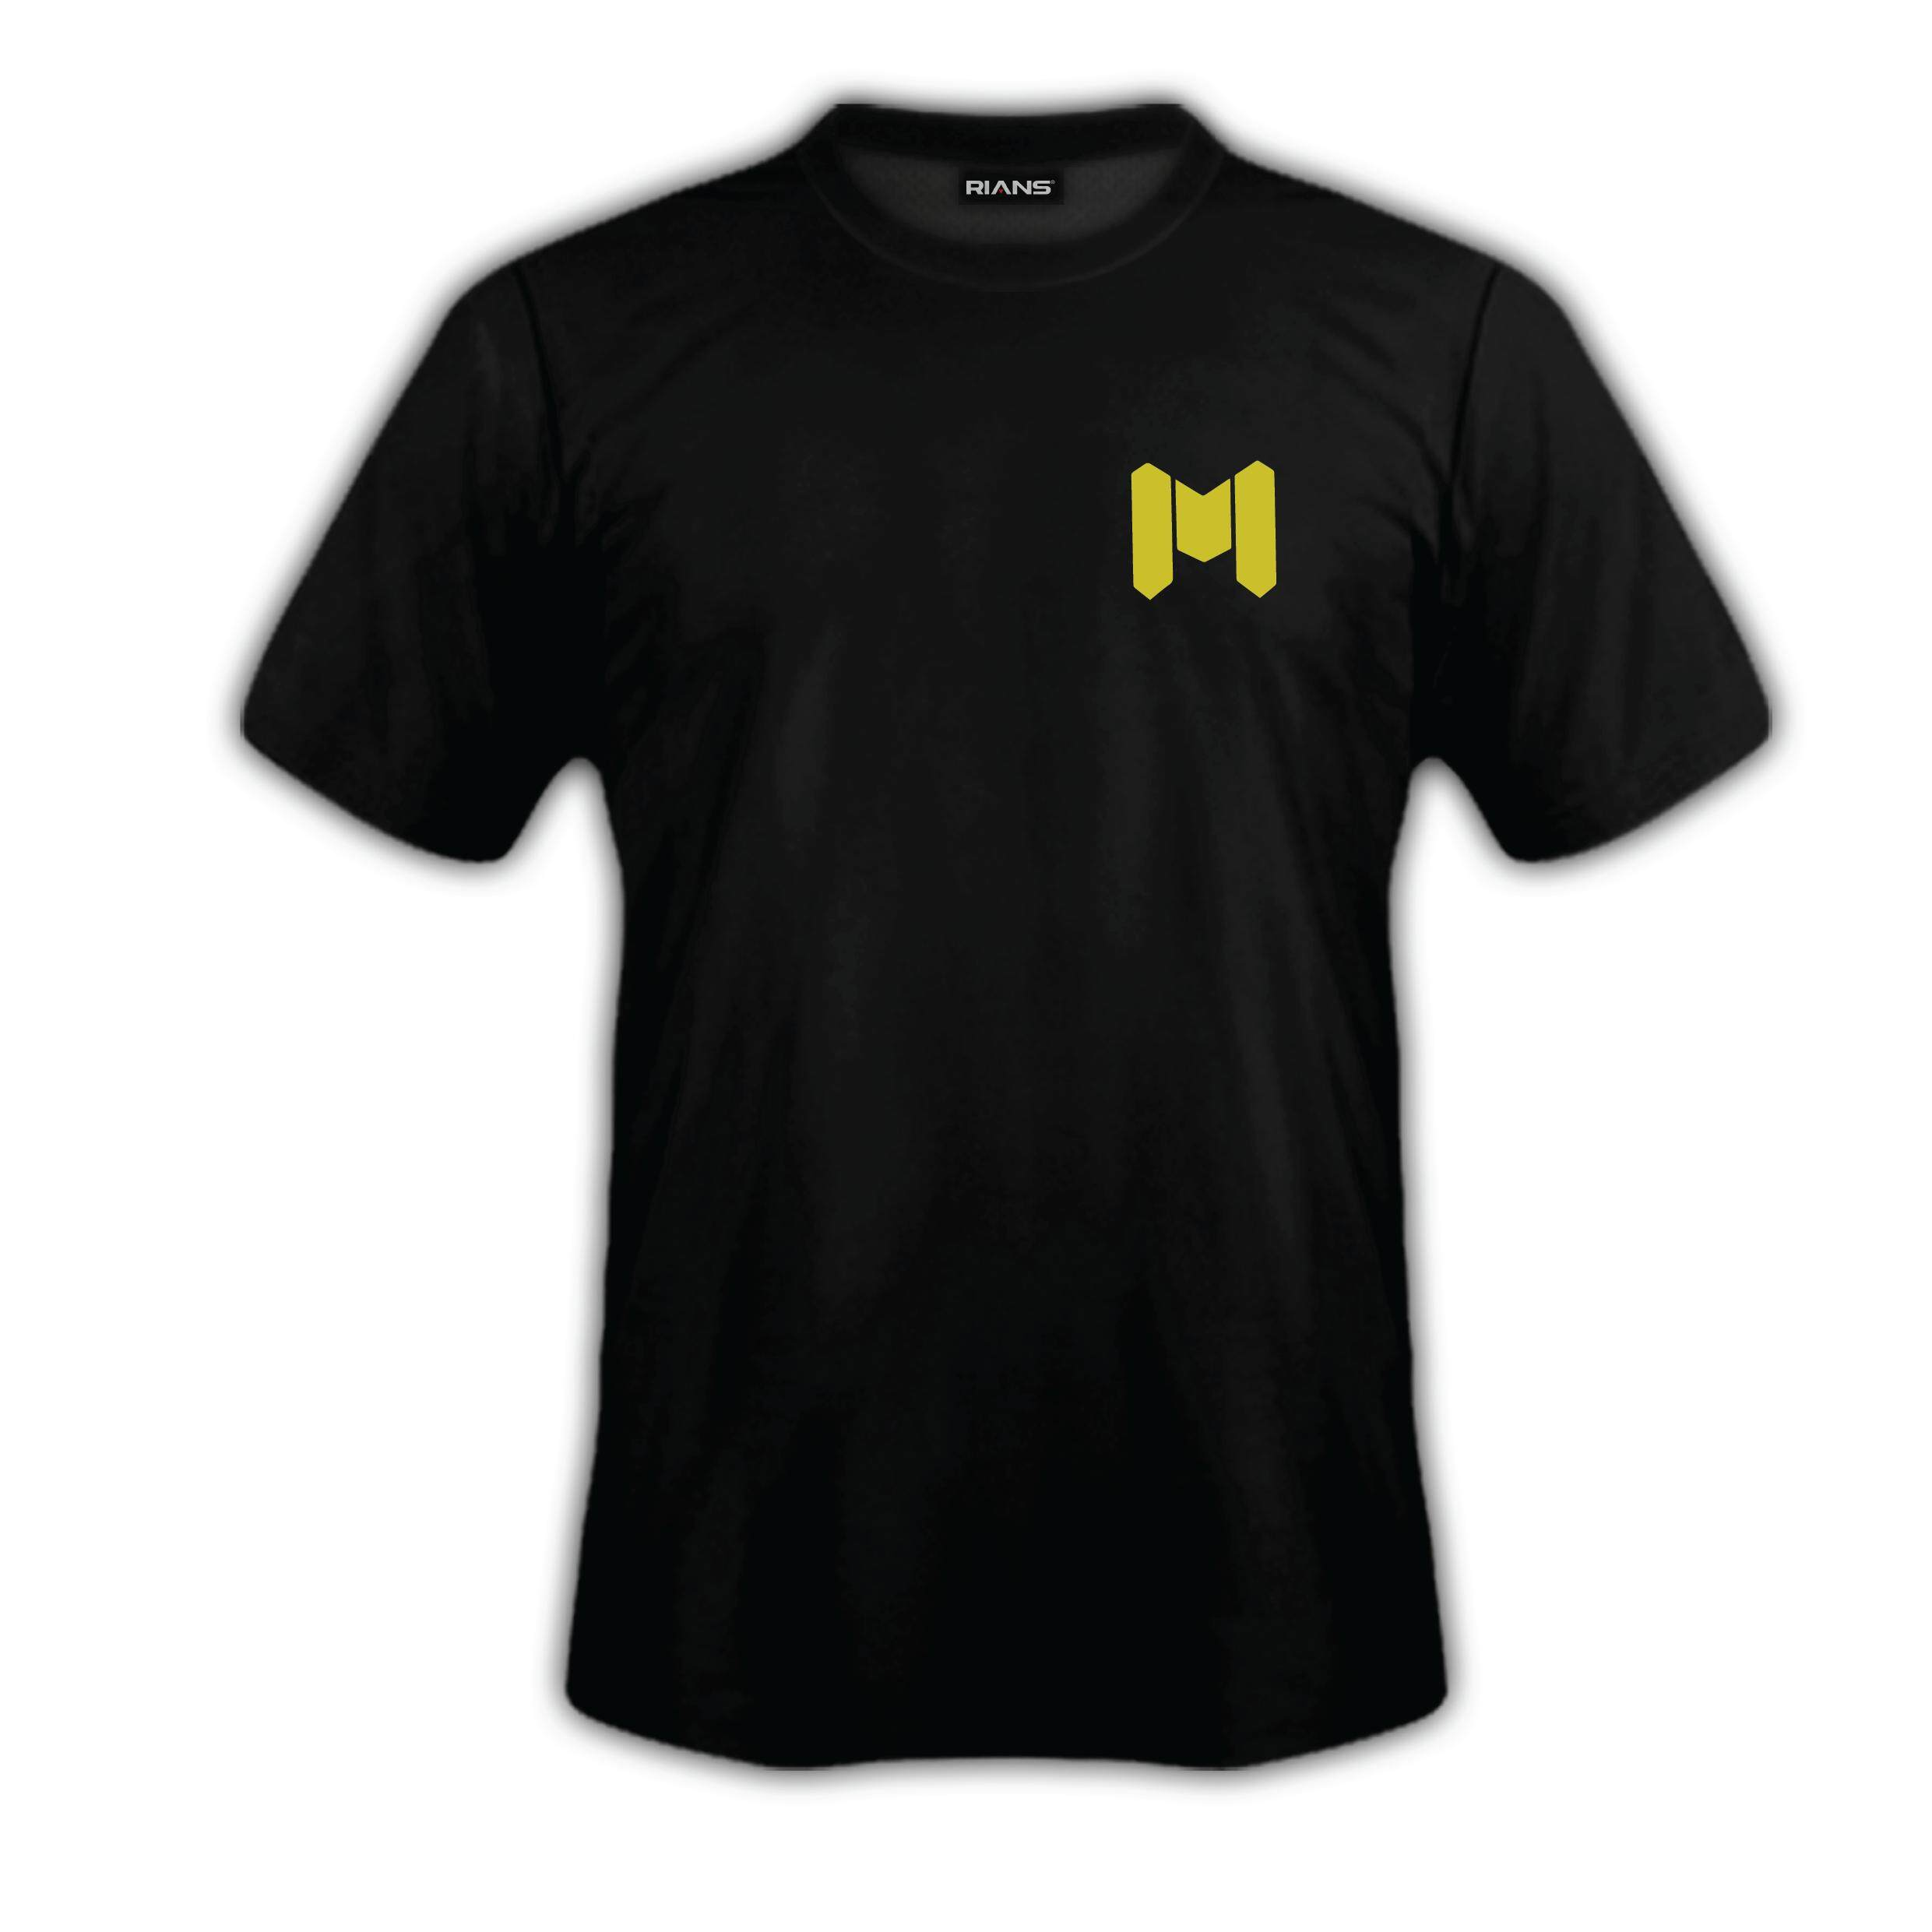 T-Shirt CALL OF DUTY MOBILE Left Yellow M Logo Short Sleeve 100% Cotton Baju Tshirt Black White Hitam Putih Bossku